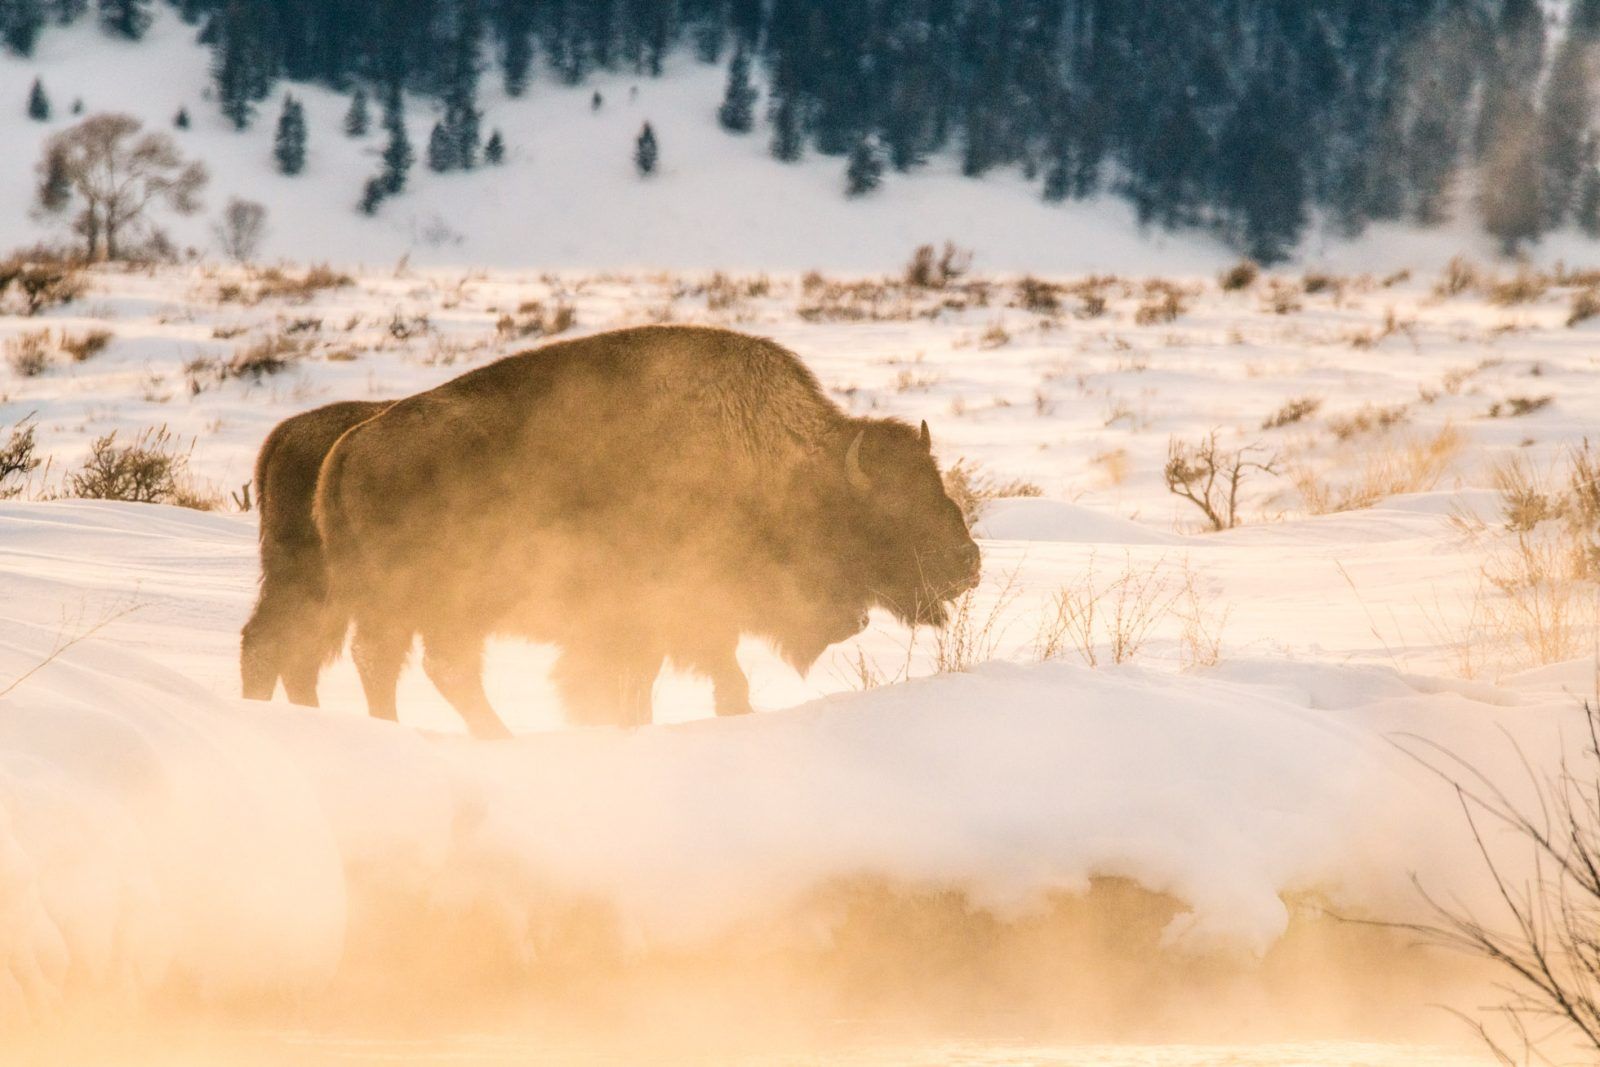 Bison in the Steam